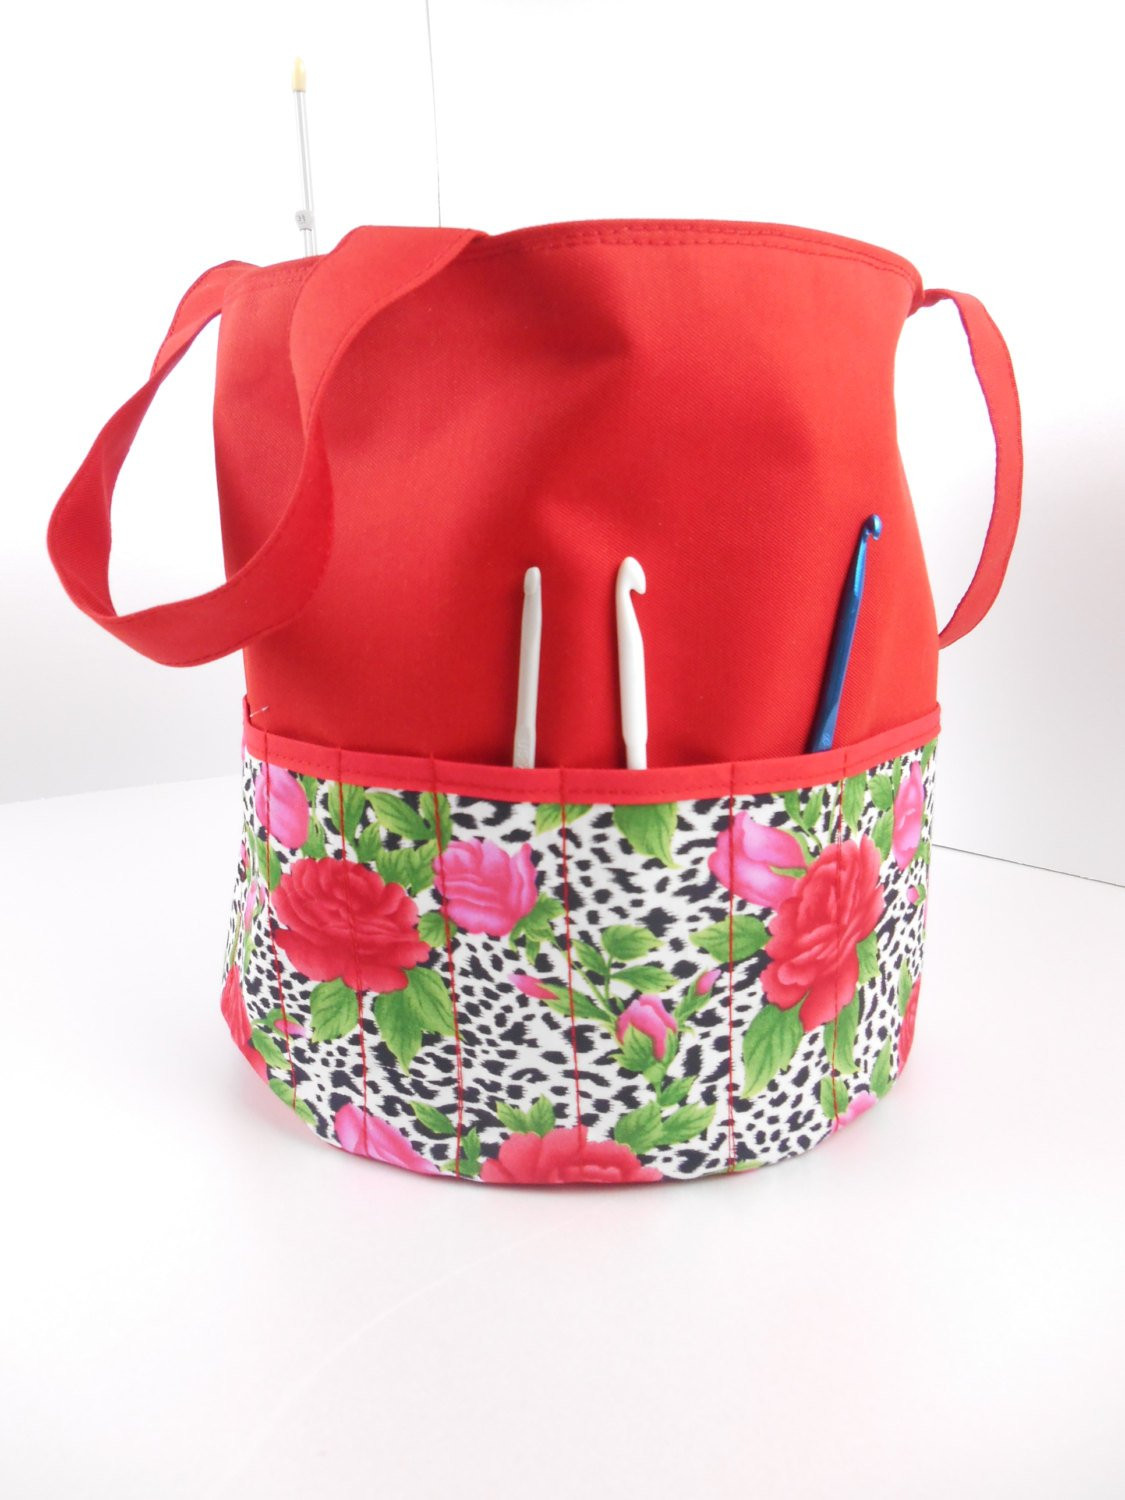 Lovely Red Knitting Bags Crocheting Bag Sewing Bag Round tote Knitting Bags and totes Of Marvelous 48 Ideas Knitting Bags and totes